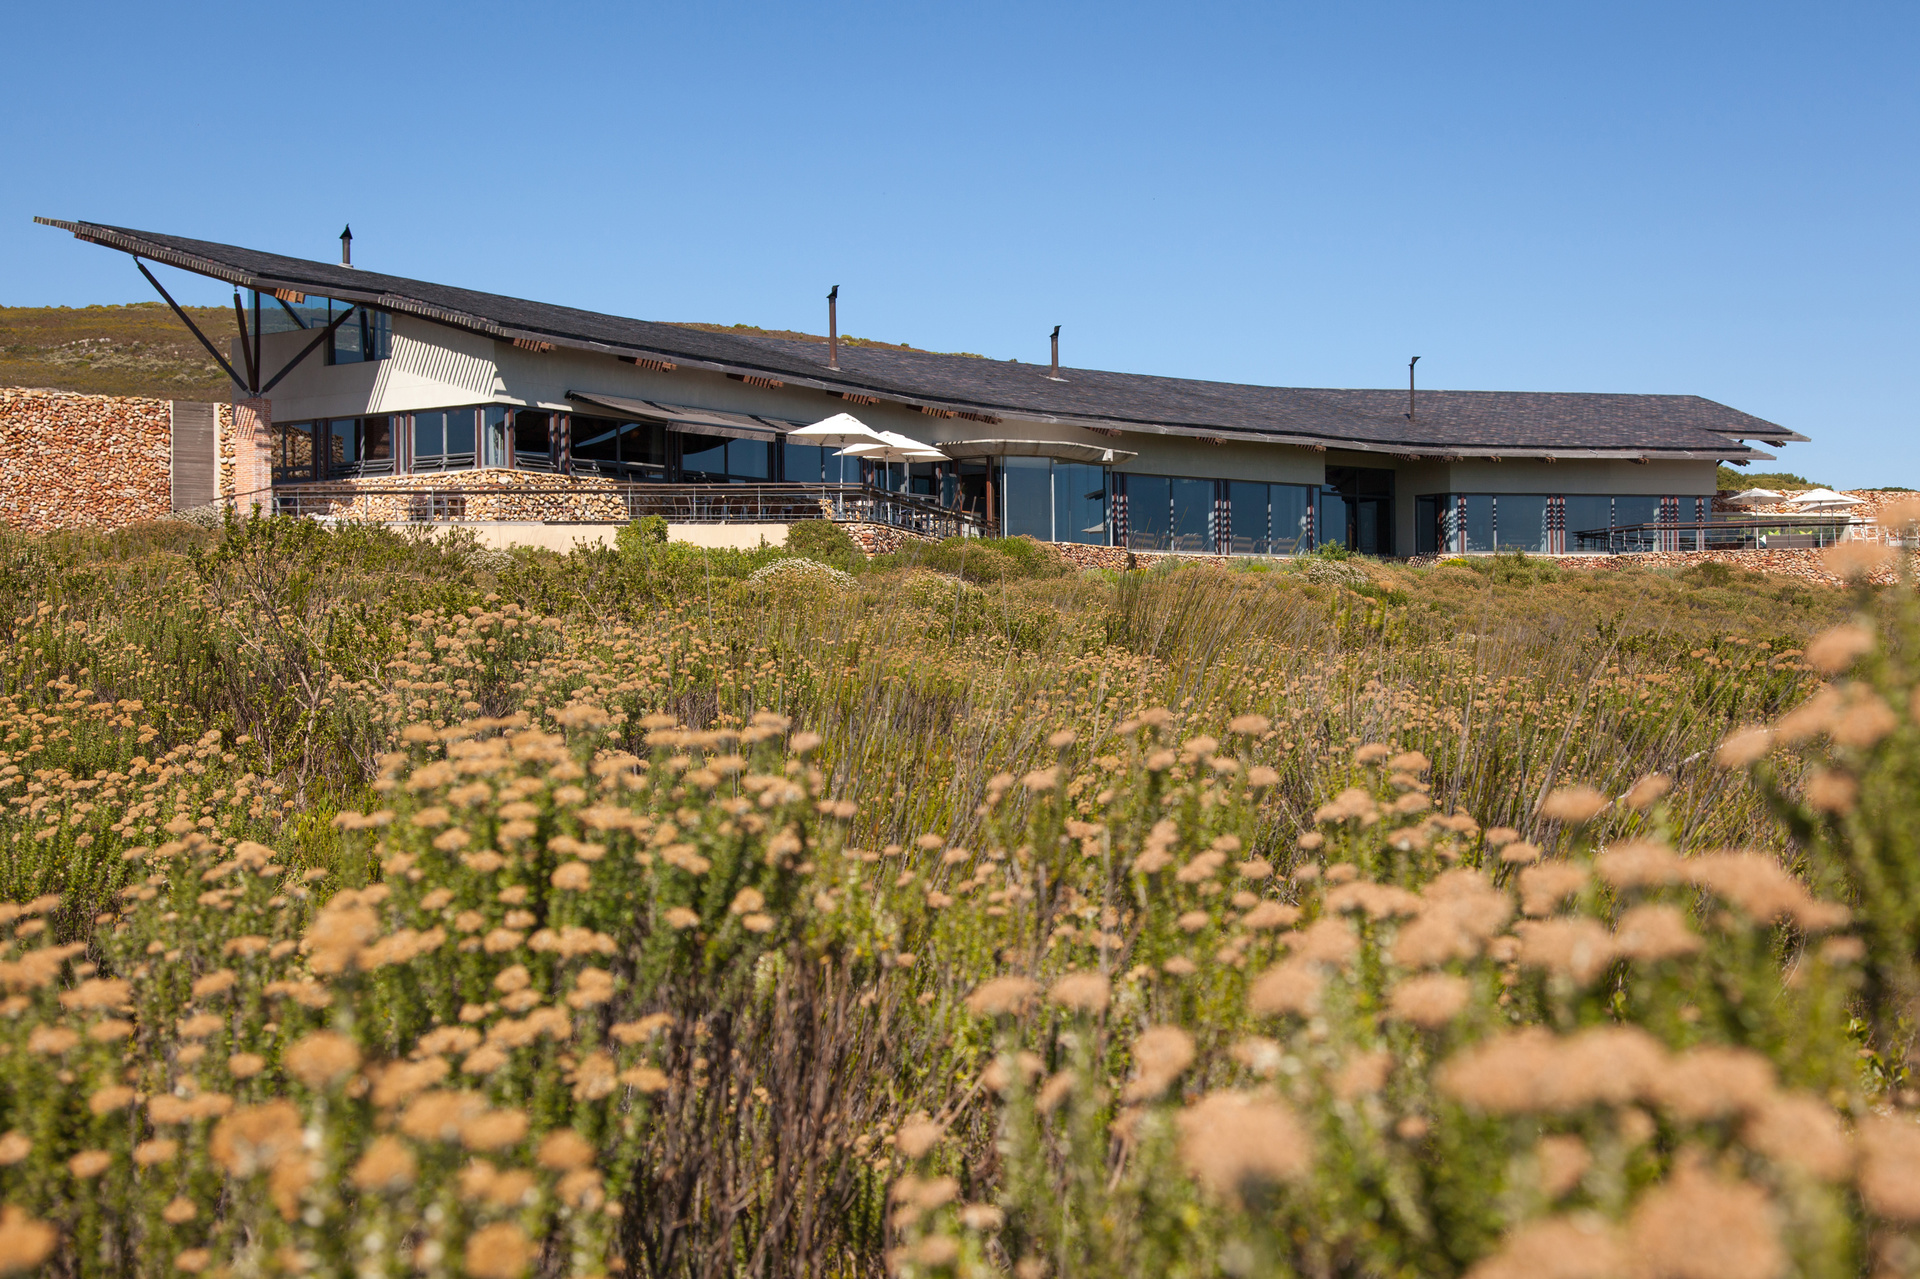 web-grootbos-accommodation-forest-lodge-exterior-02.jpg